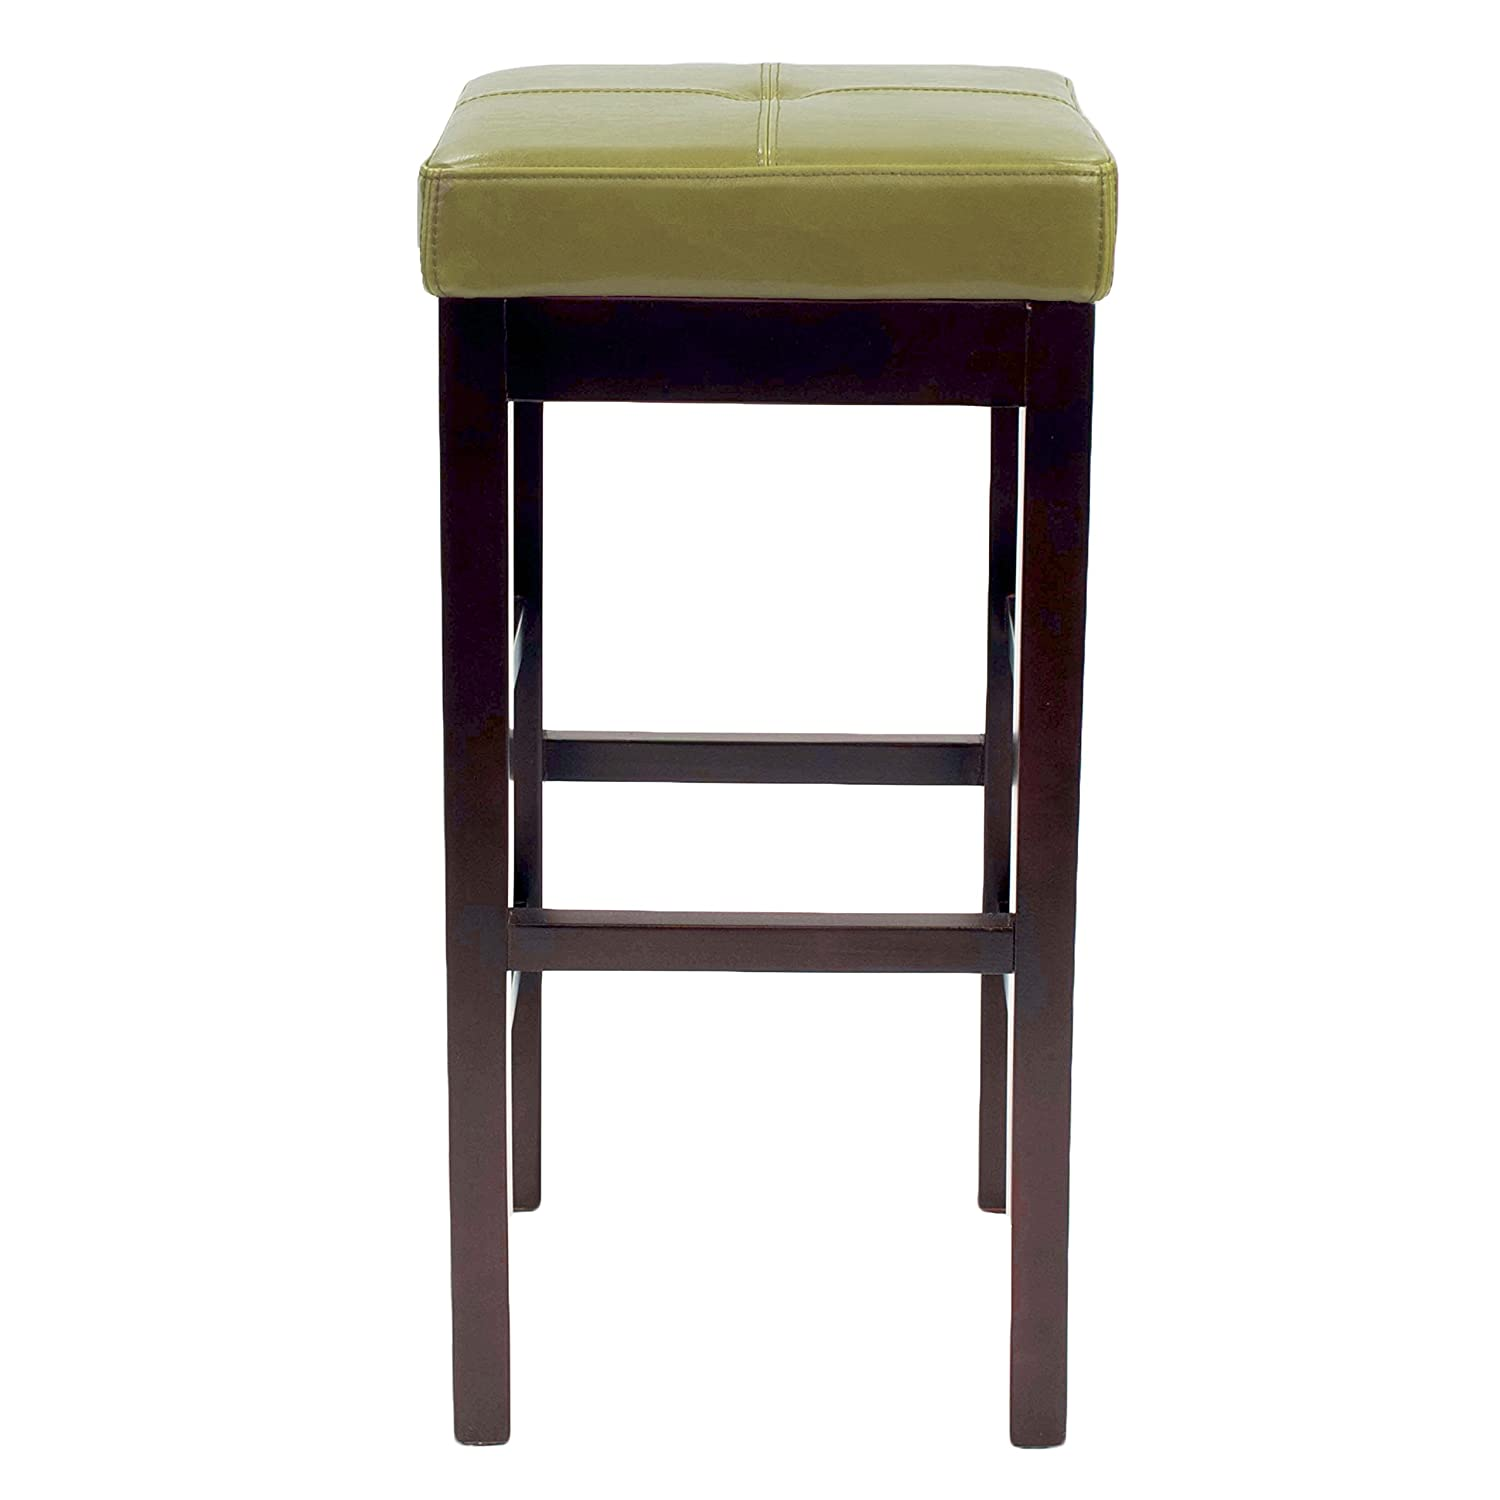 New Pacific Direct Valencia Backless Leather Counter Stool 27 ,Brown Legs,Wasabi